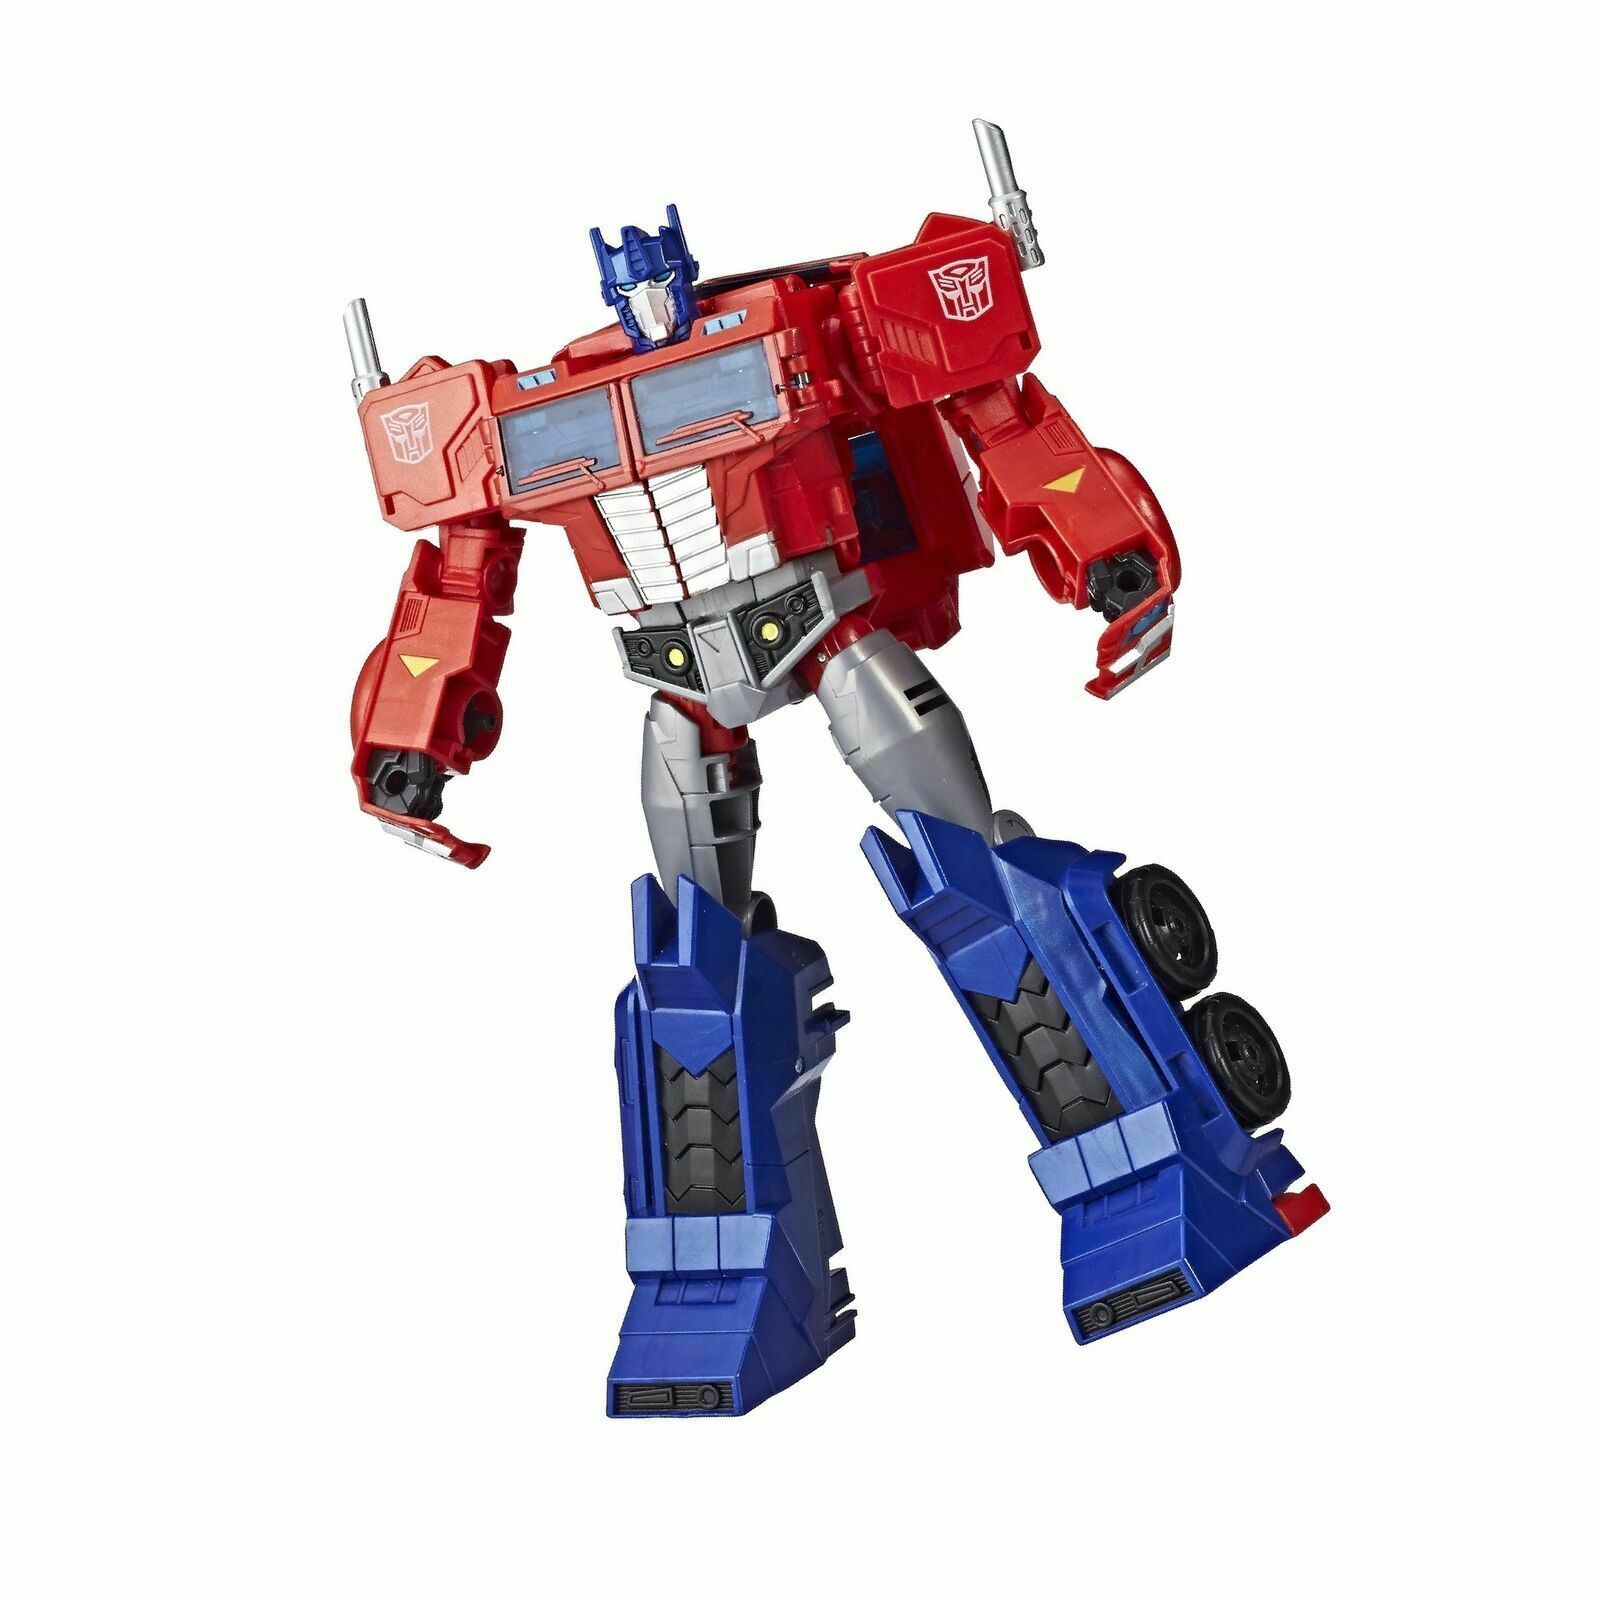 Transformers Toys Optimus Prime Cyberverse Ultimate Class Action Figure